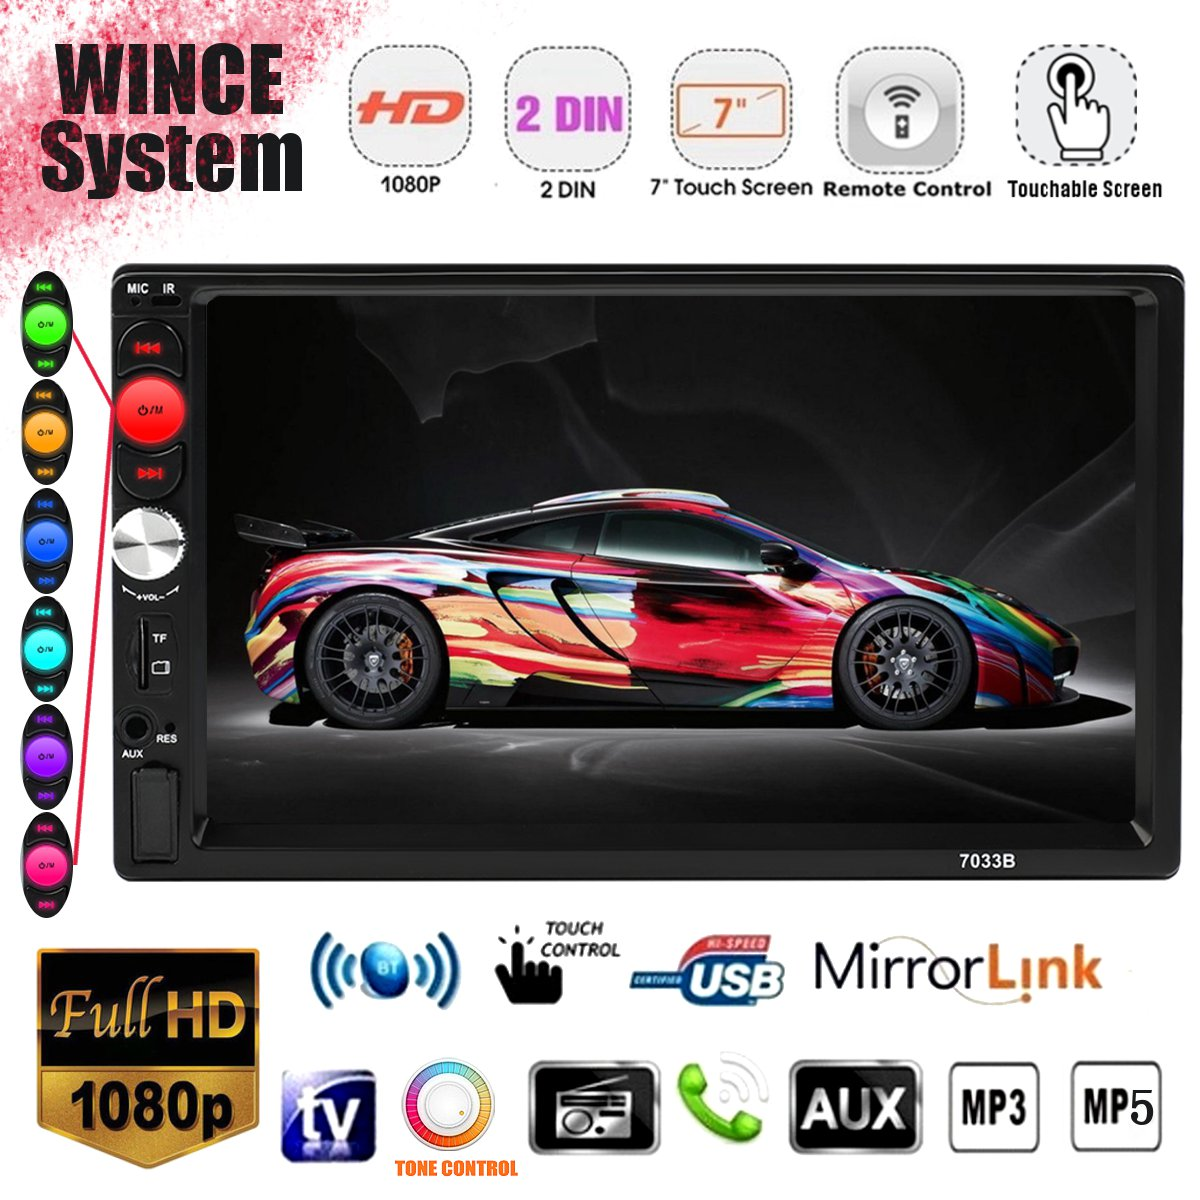 7 2 Din WINCE System Universal Car multimedia Player MP3 MP4 MP5 FM bluetooth Stereo Raido Video Audio Player7 2 Din WINCE System Universal Car multimedia Player MP3 MP4 MP5 FM bluetooth Stereo Raido Video Audio Player